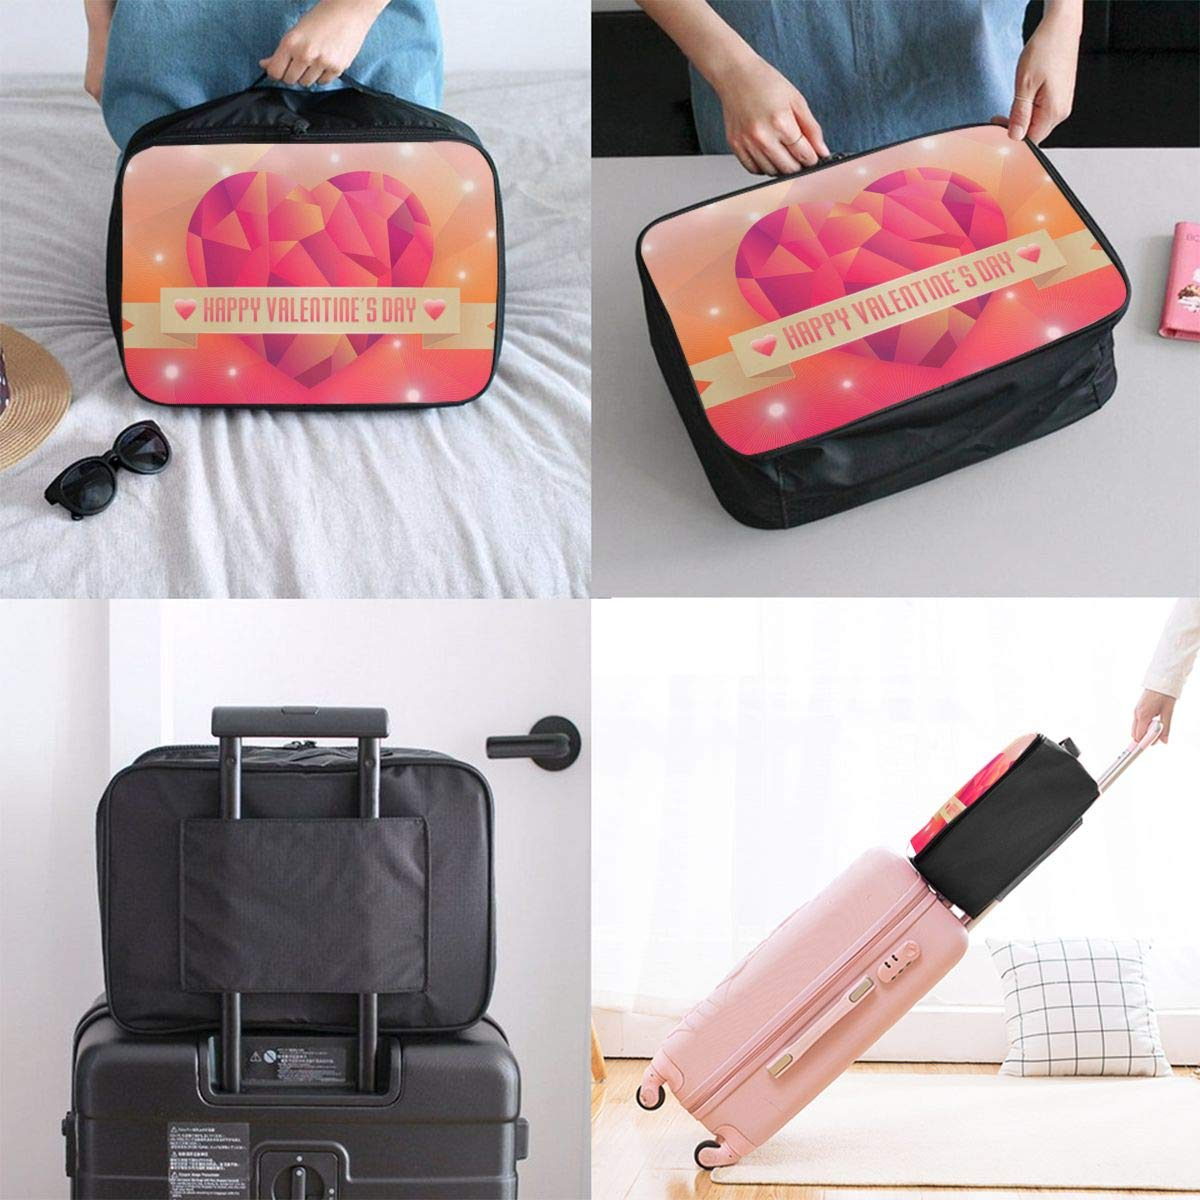 Travel Luggage Duffle Bag Lightweight Portable Handbag Happy Valentines Day Large Capacity Waterproof Foldable Storage Tote